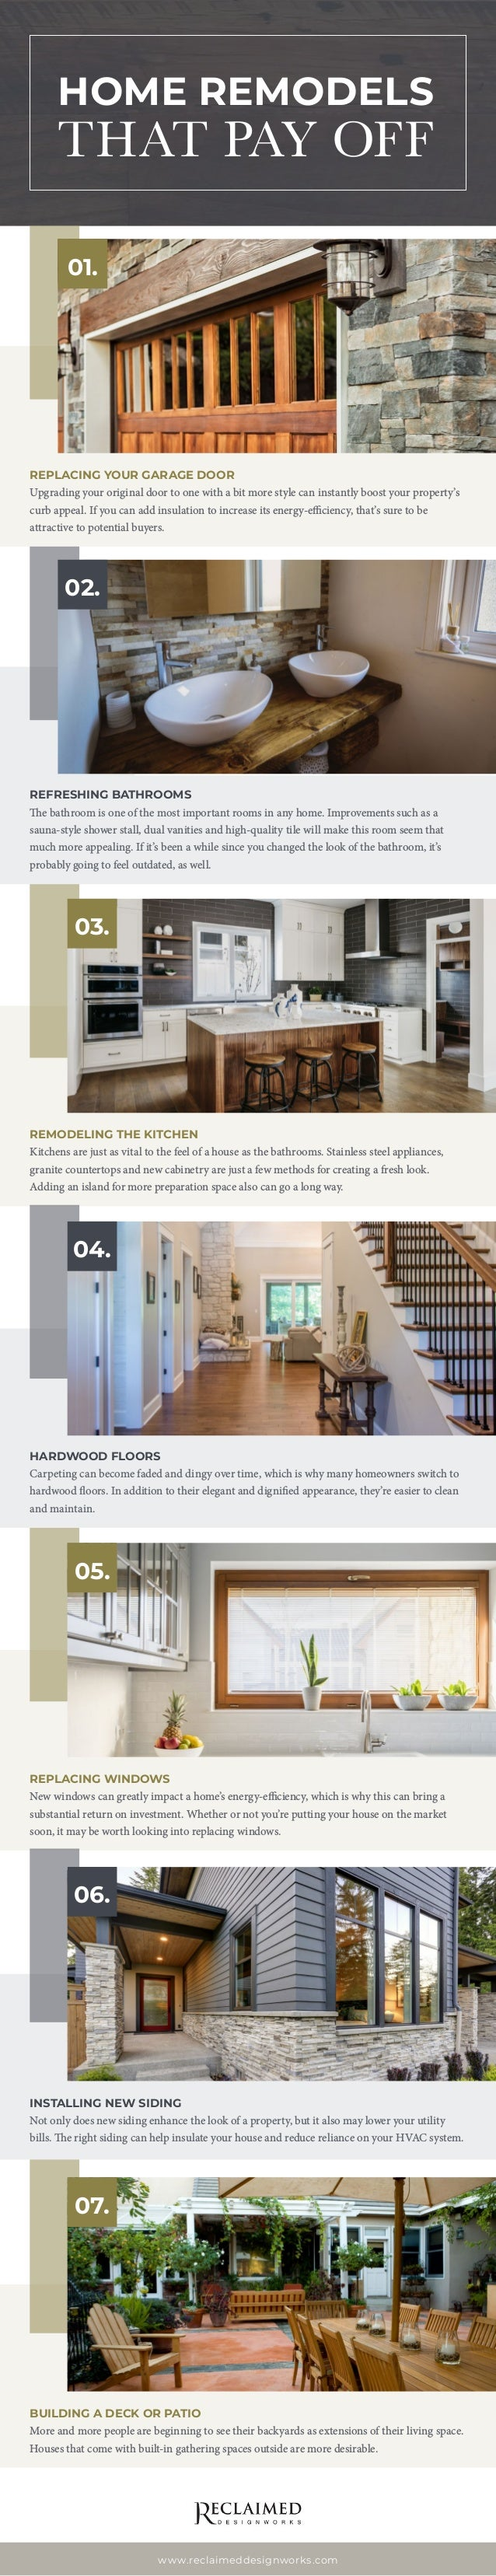 home remodels that pay off infographic